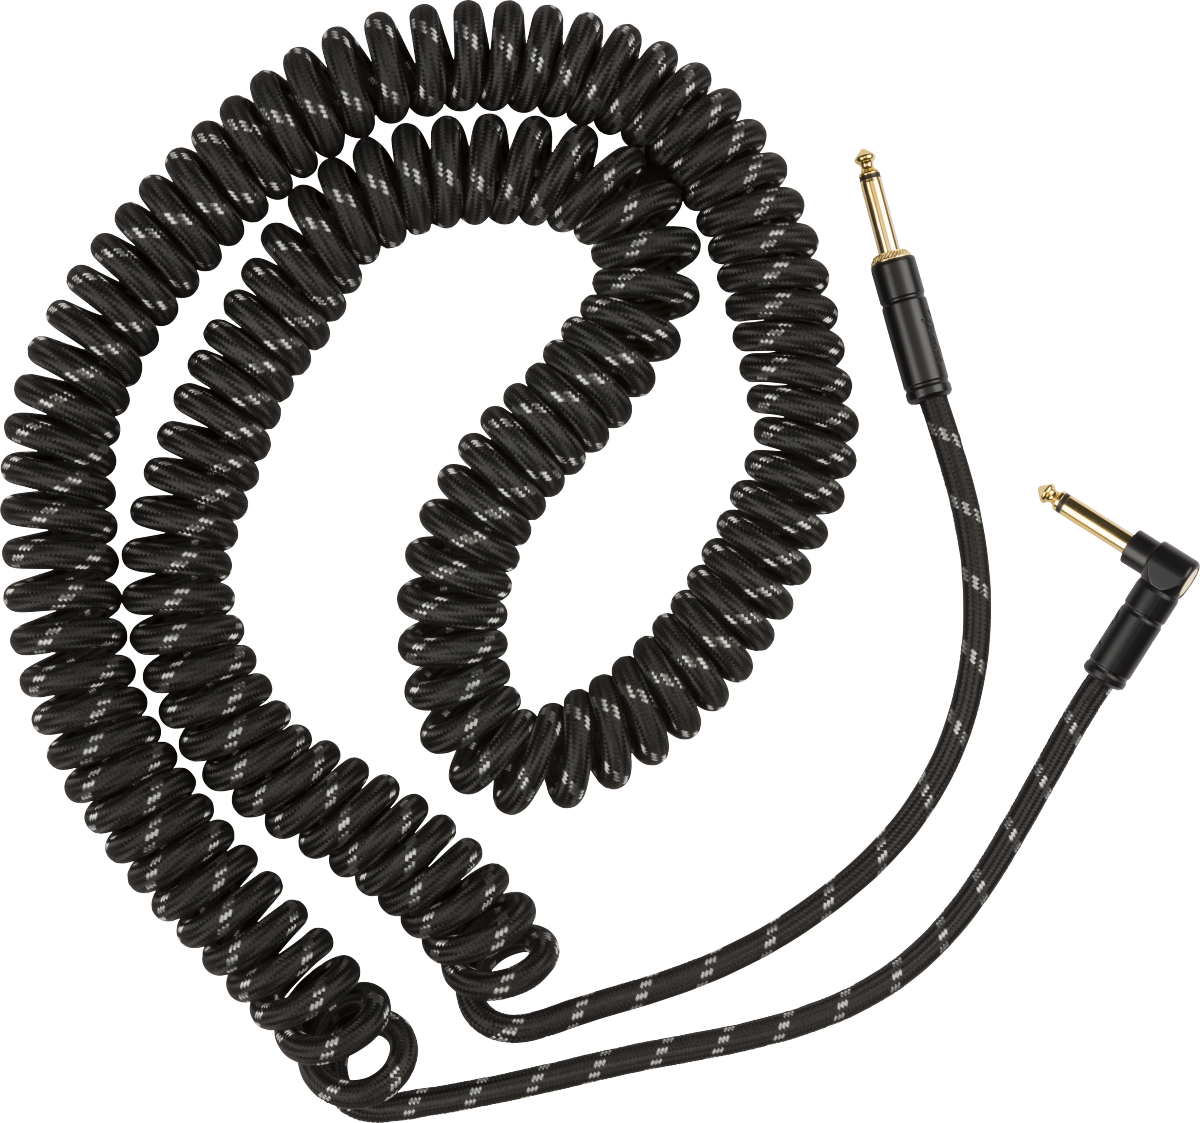 FENDER PRO COIL CABLE 30' BLACK TWEED